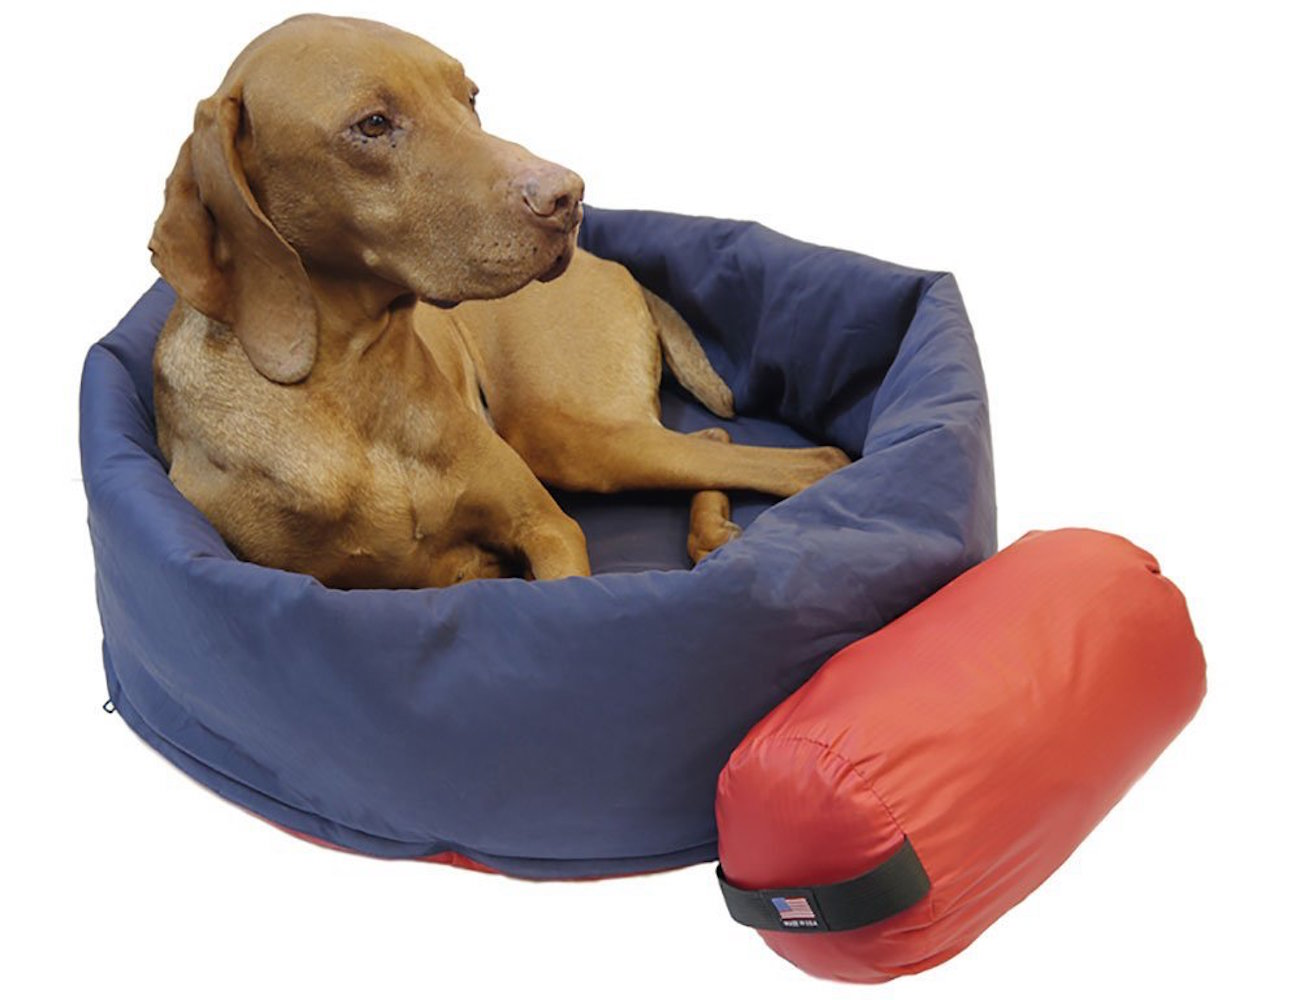 Noblecamper 2-in-1 Ultralight Travel Dog Bed and Sleeping Bag